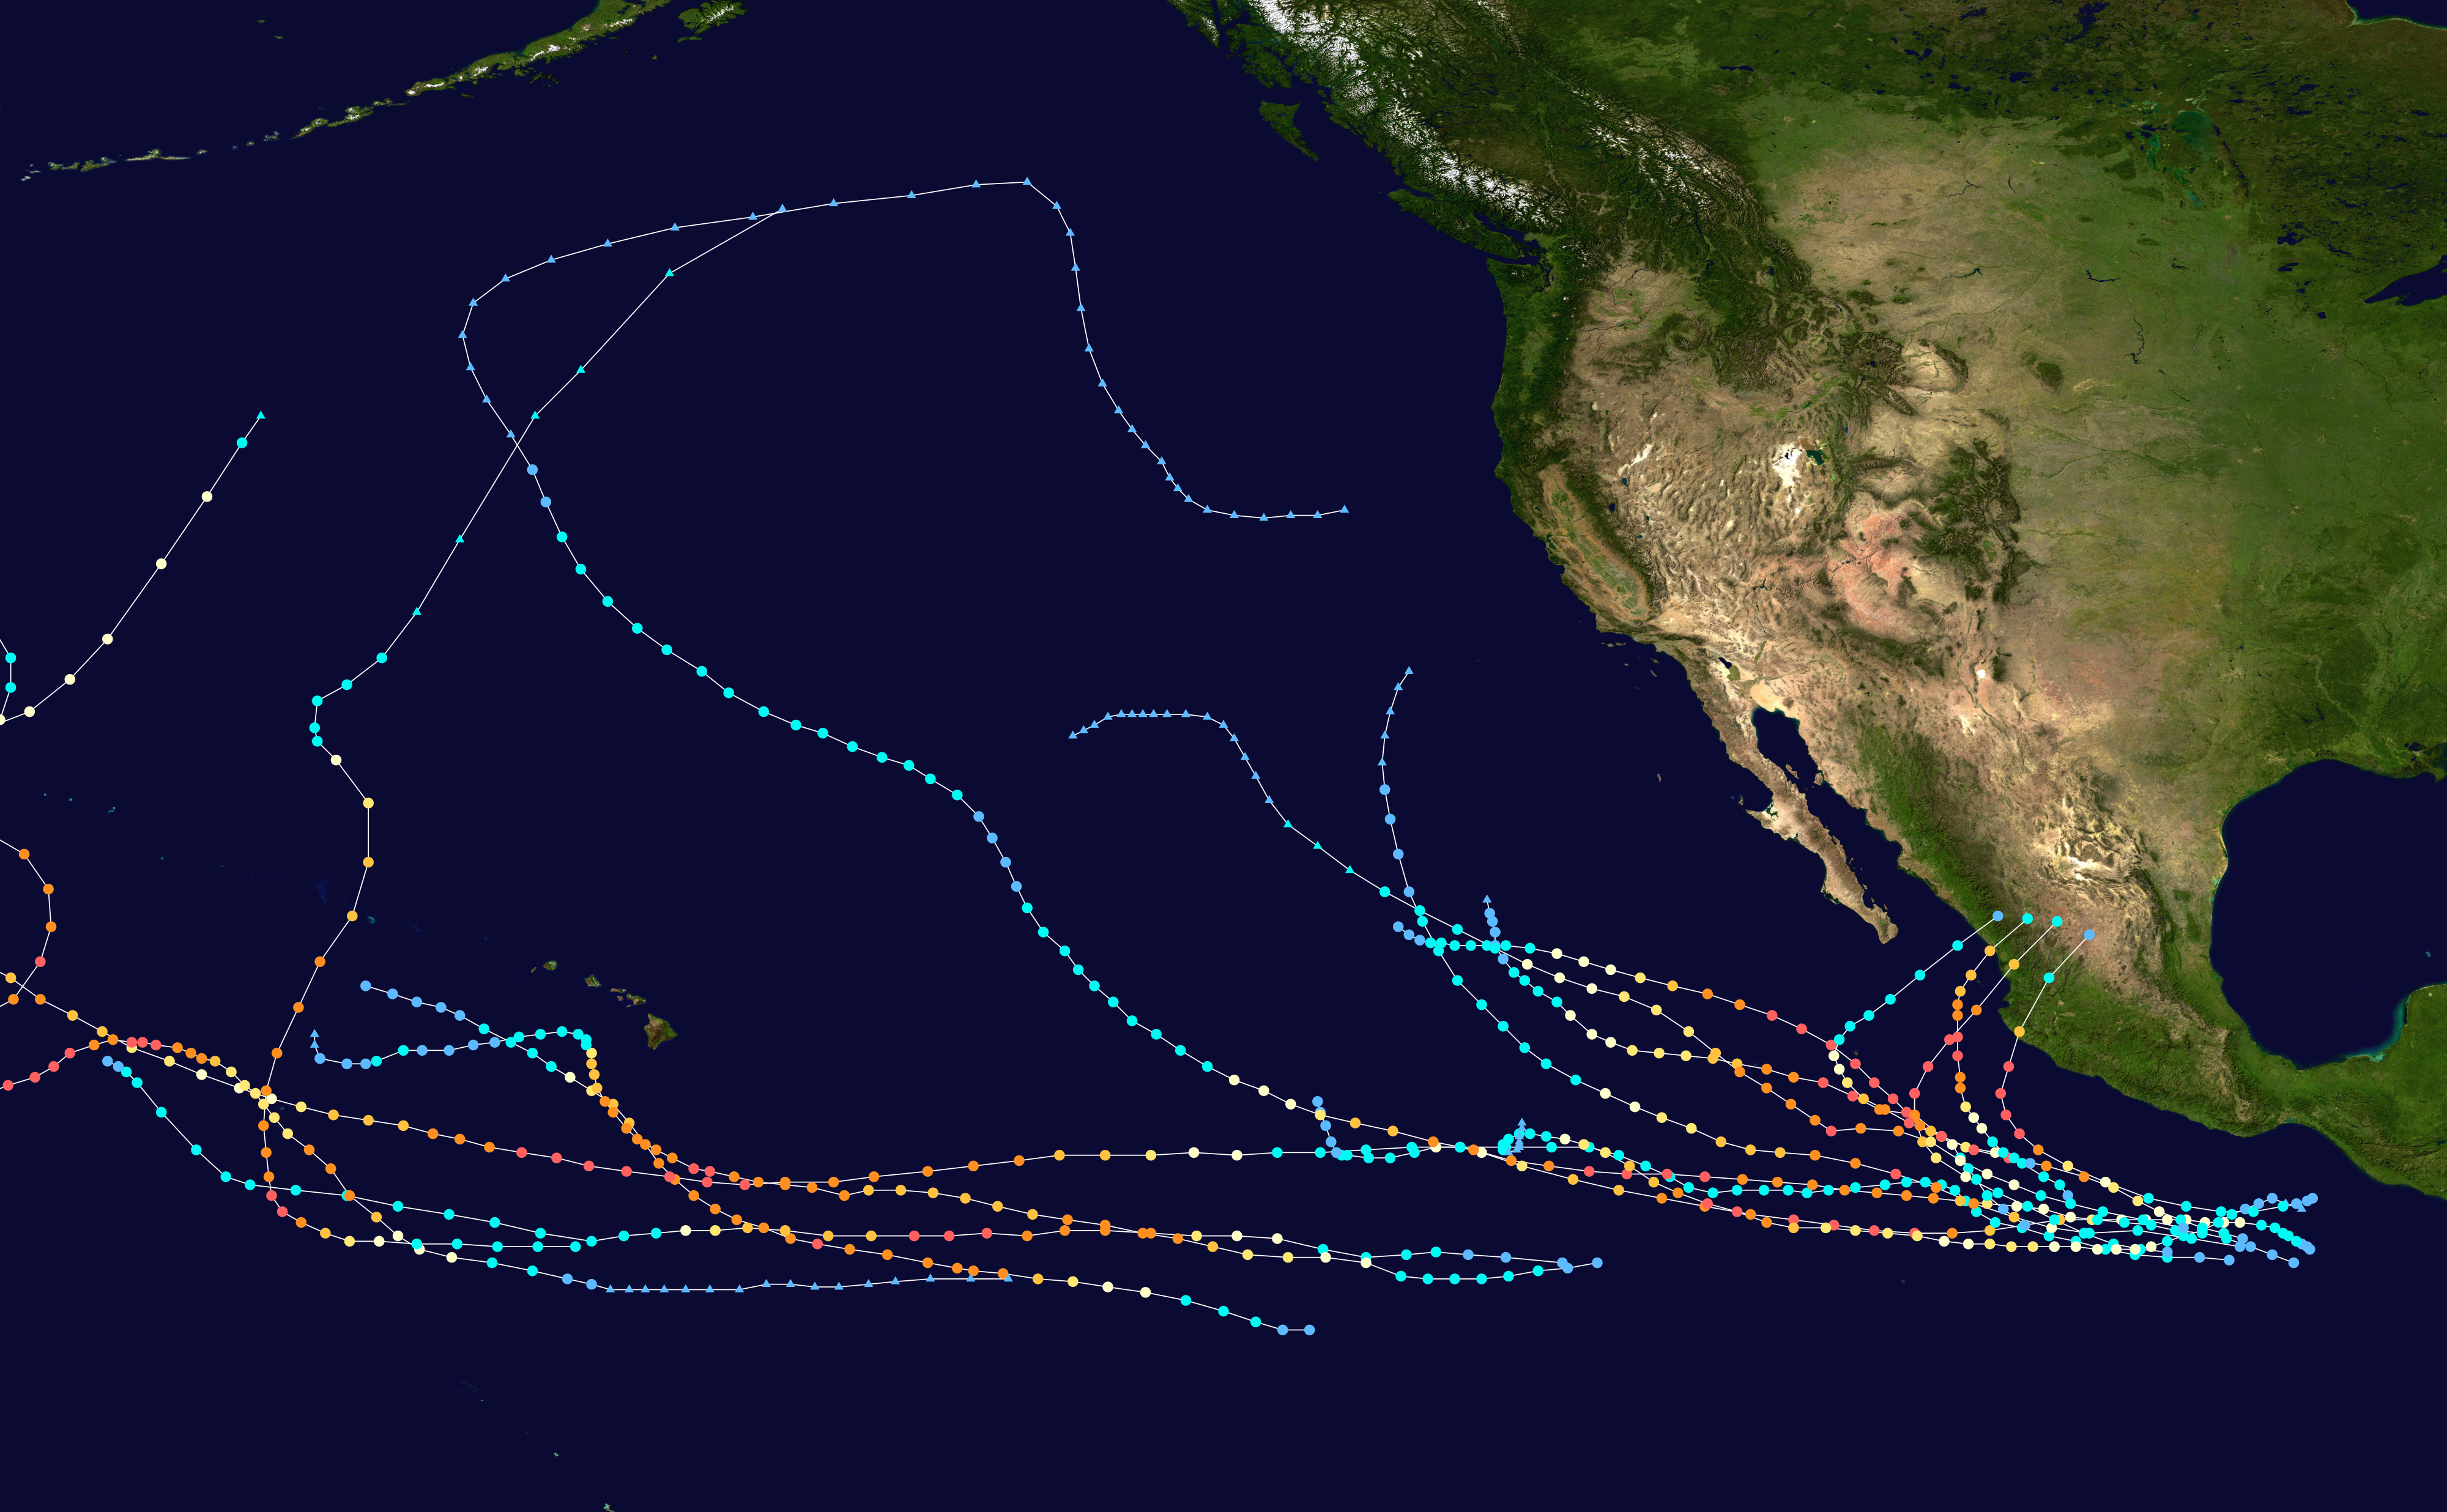 List of Category 5 Pacific hurricanes - Wikipedia